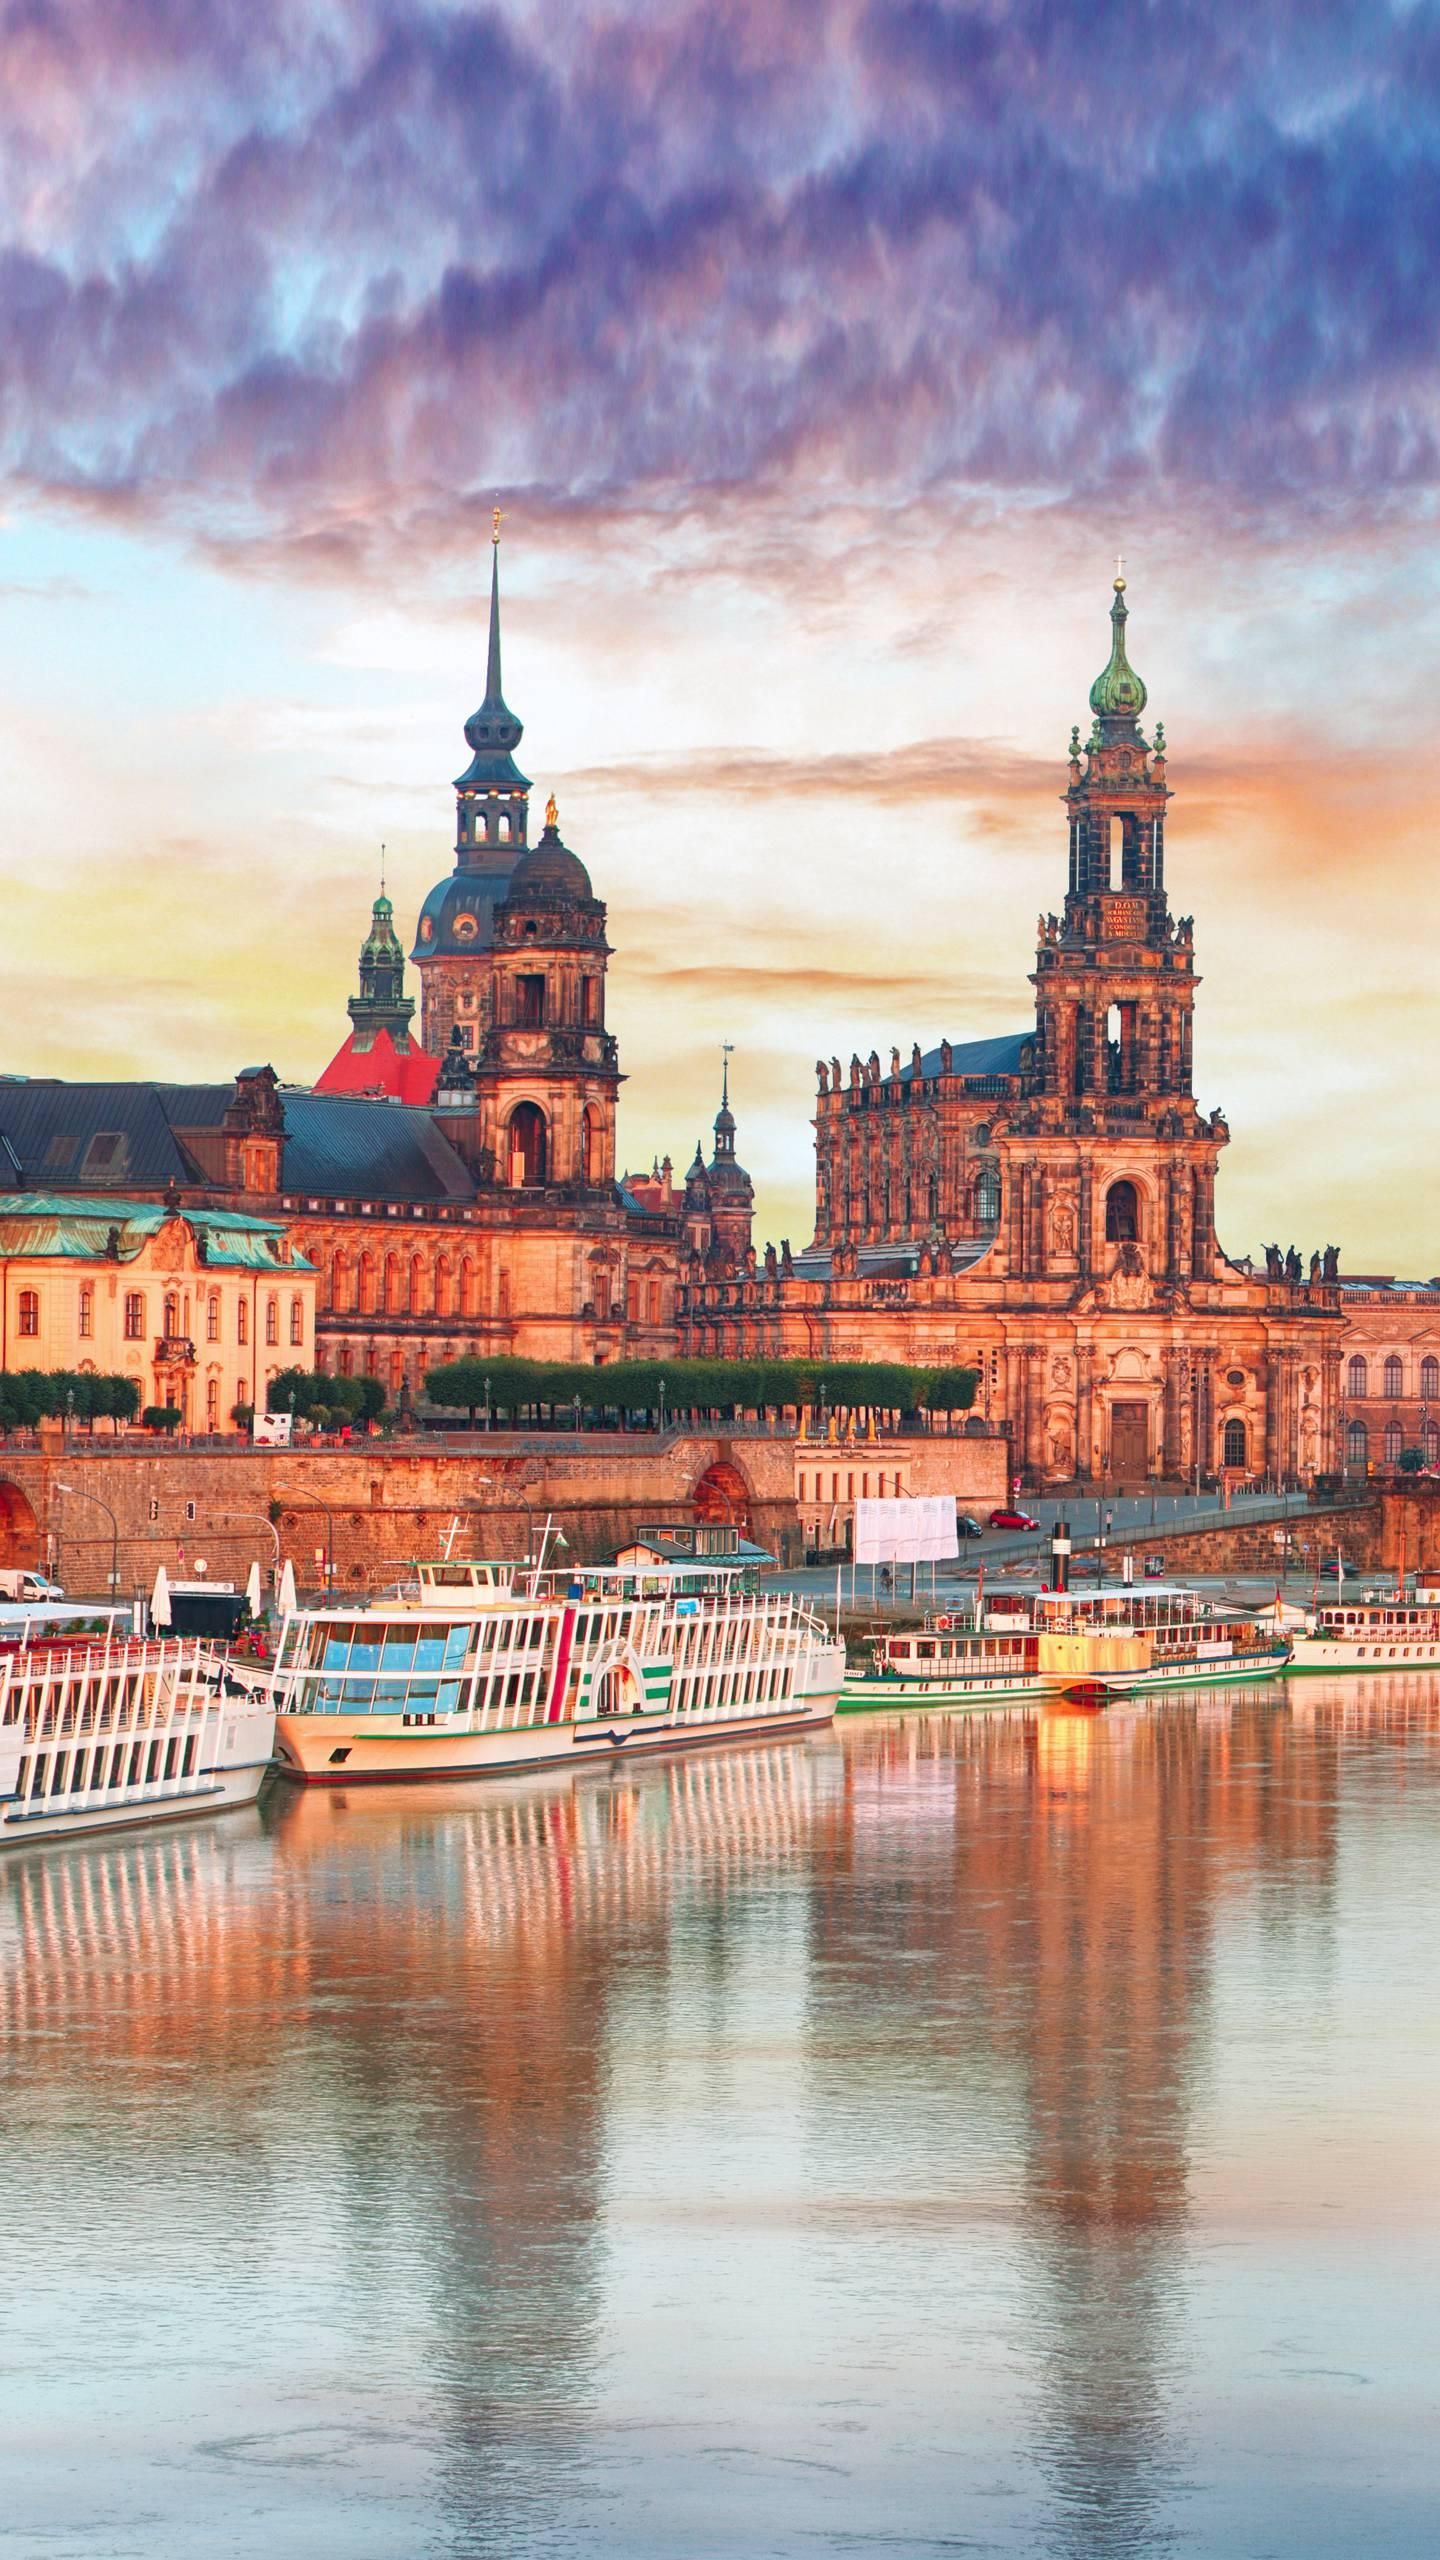 Germany - Dresden. With hundreds of years of prosperity and splendid culture and art, it is regarded as one of the most beautiful cities in Europe.